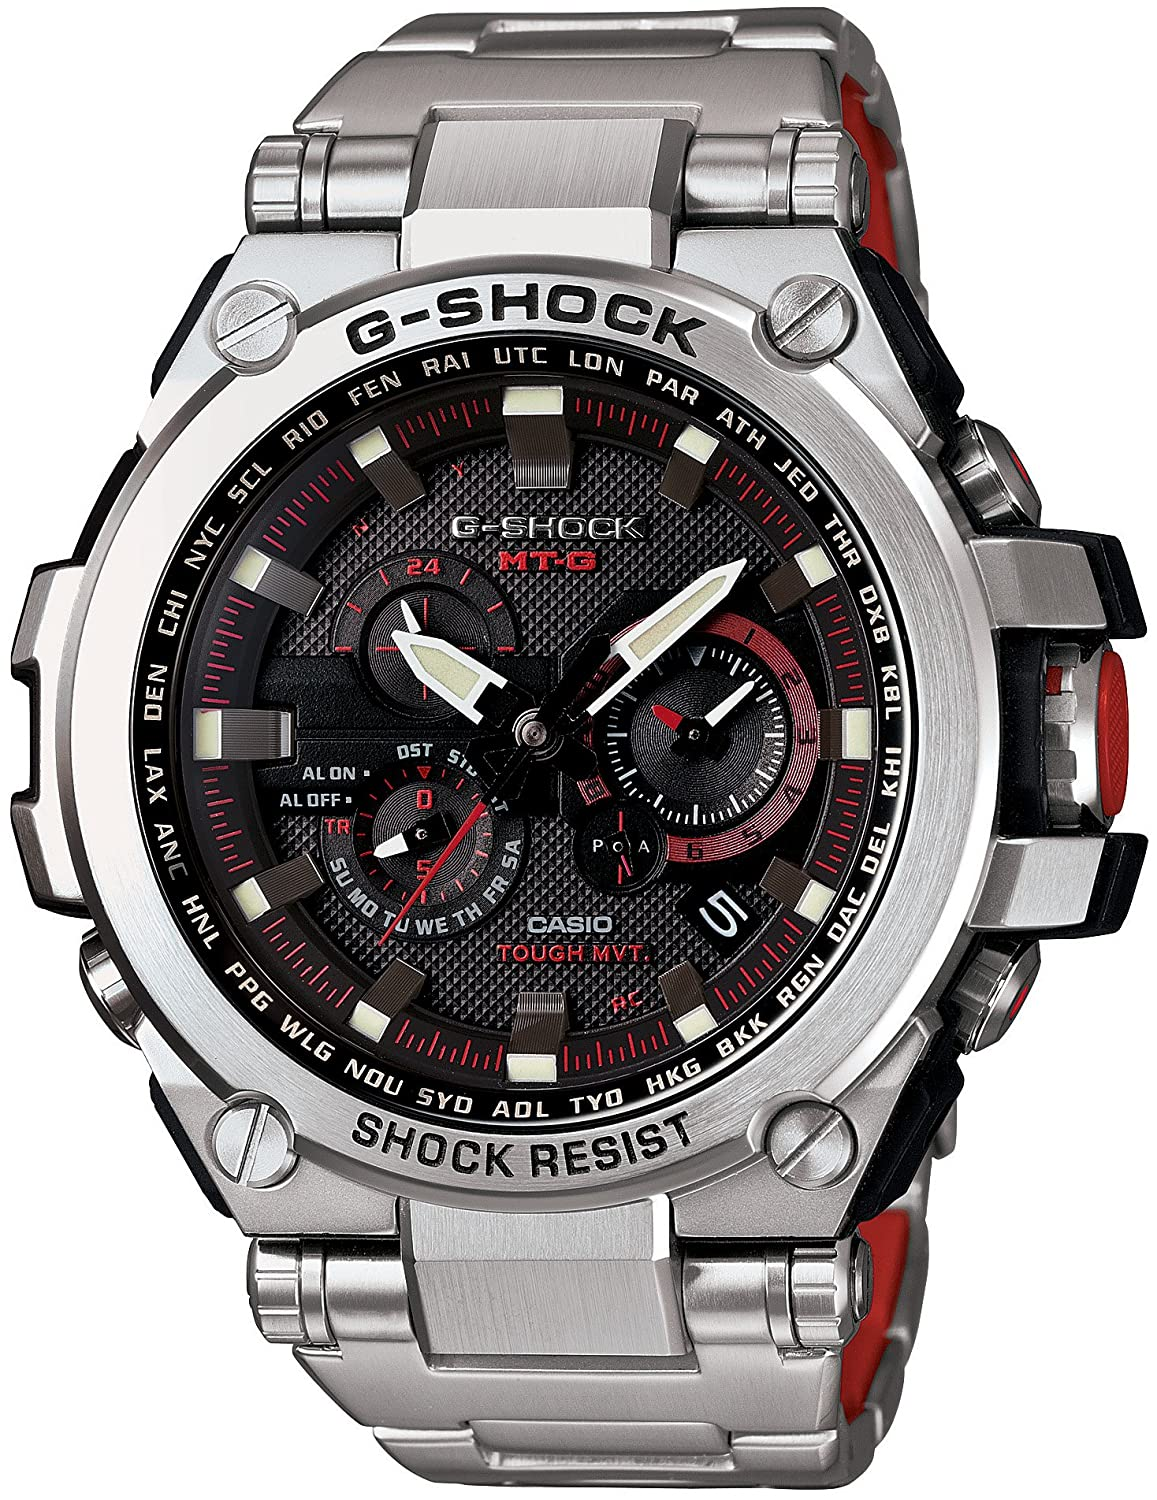 Amazon.com  CASIO MT-G G-Shock Model MTG-S1000D-1A4JF(Japan Domestic  genuine products)  Watches 1d39e040d3